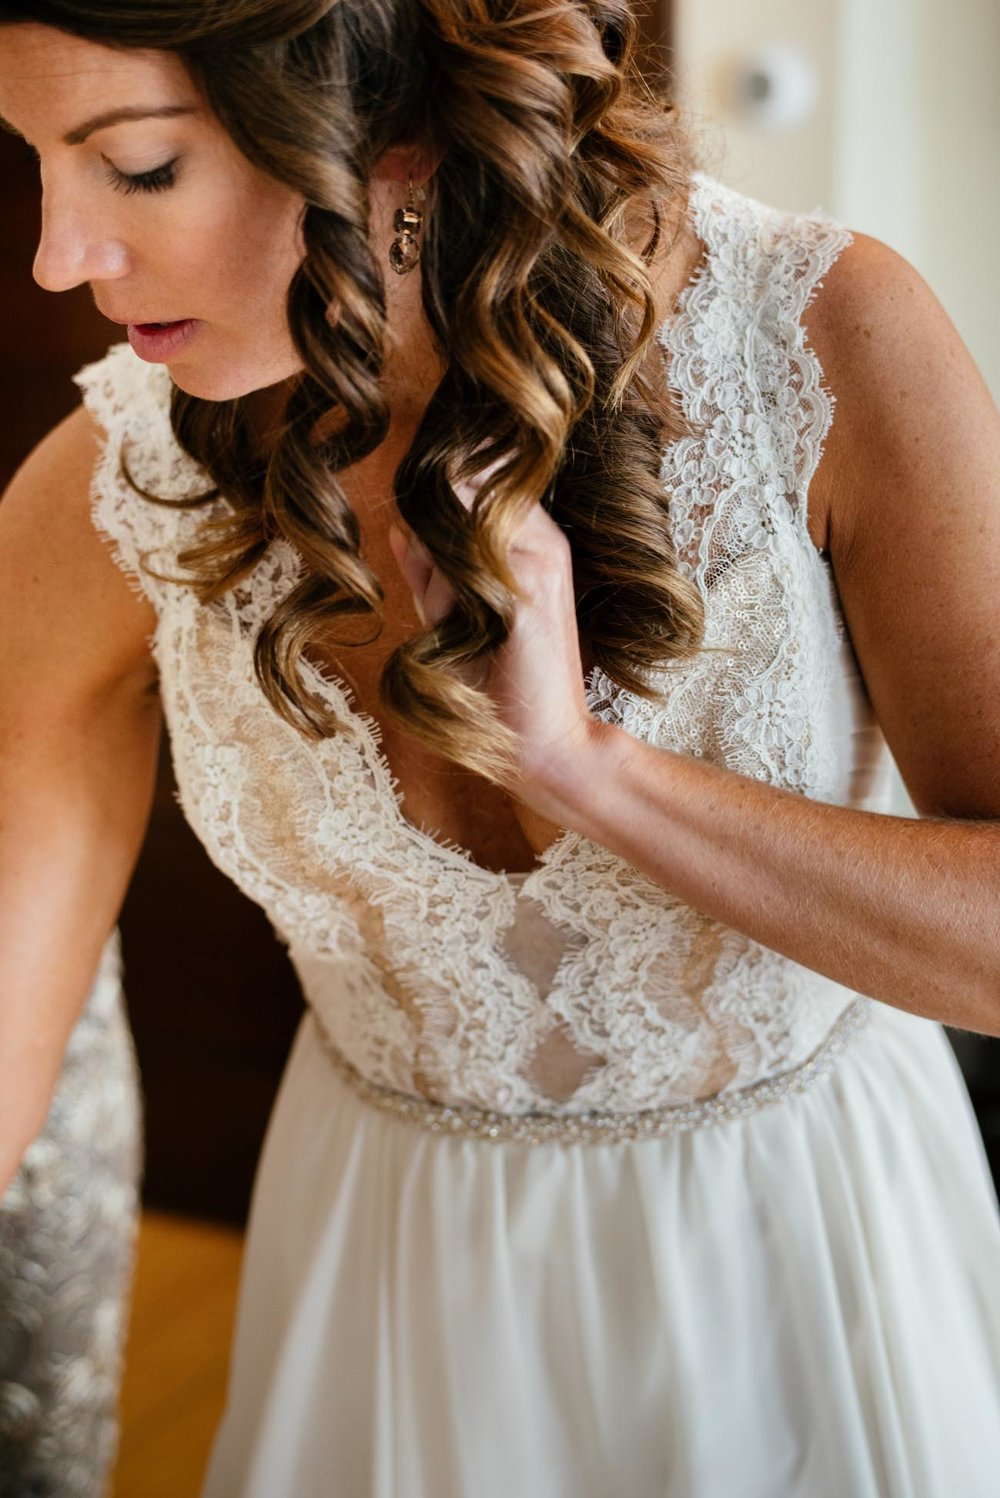 destination weddings stunning bride getting ready in maine barn and coastal wedding